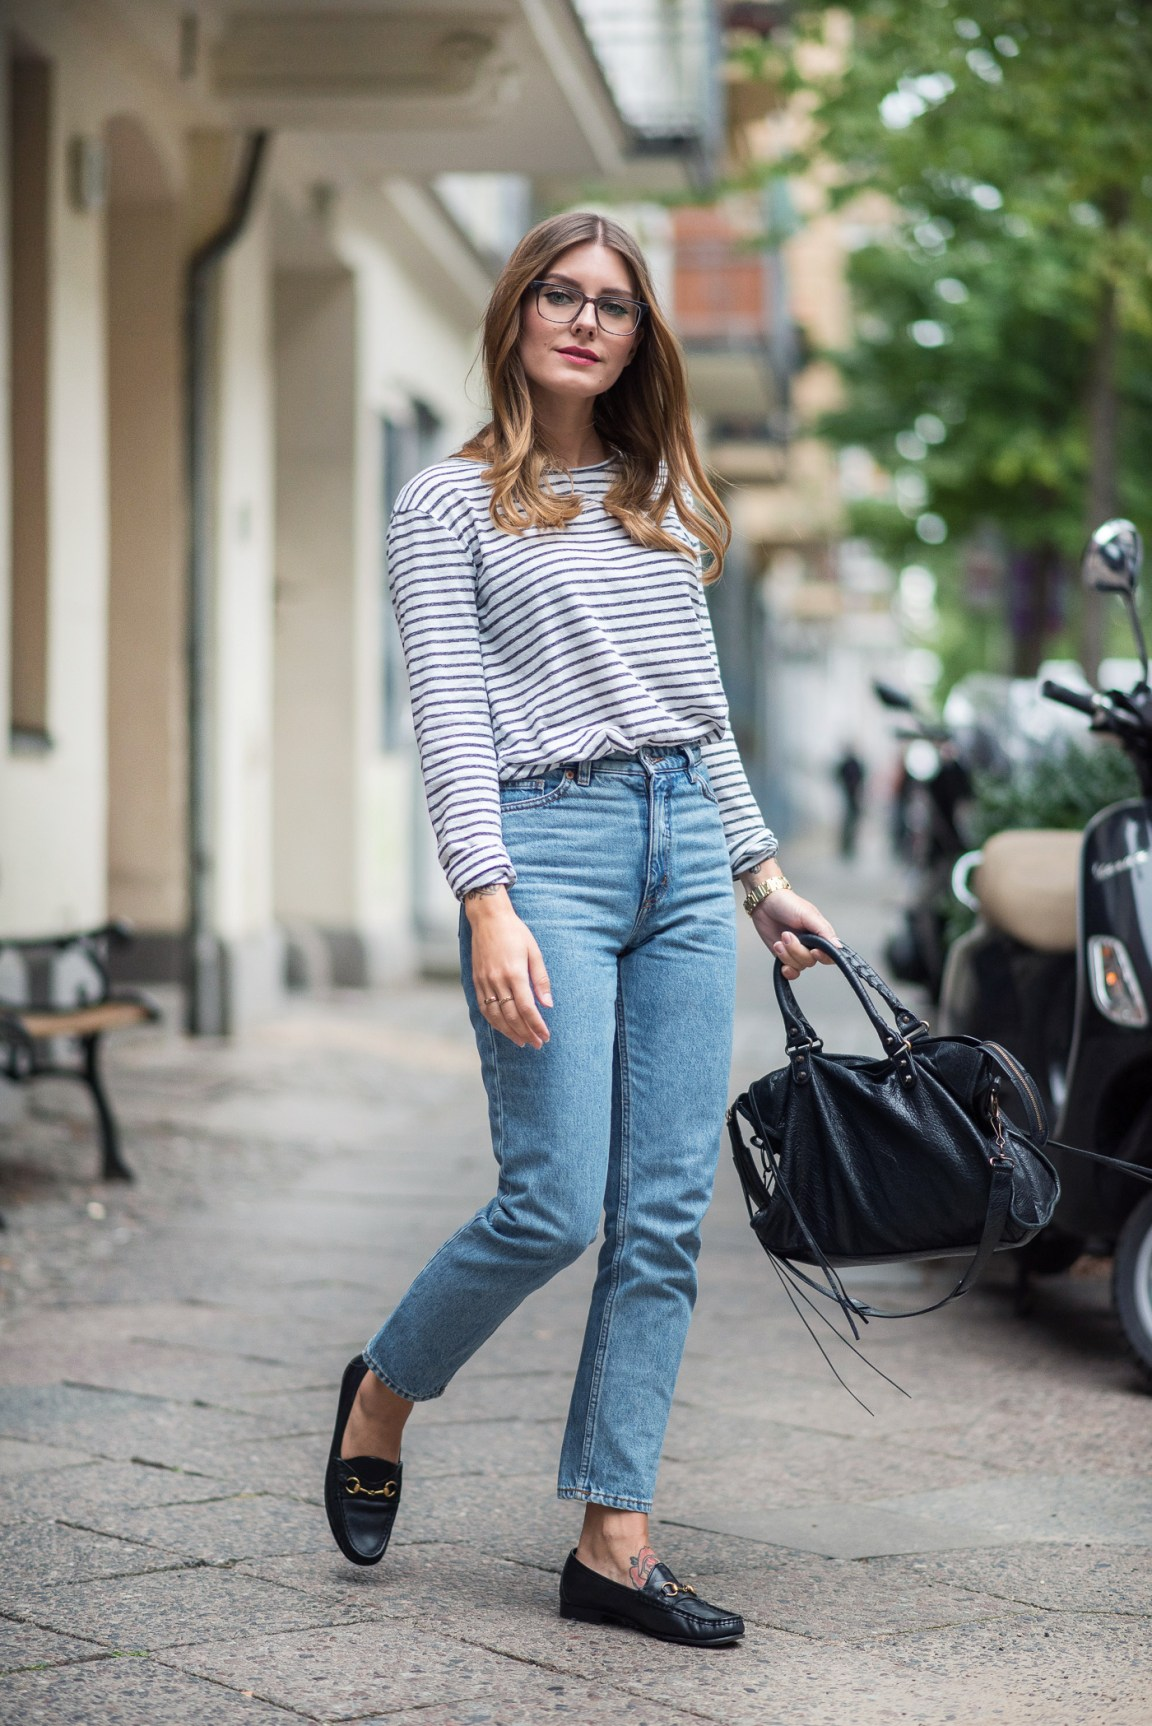 Blogger_for_Mister_Spex_Brille_Outfit_1